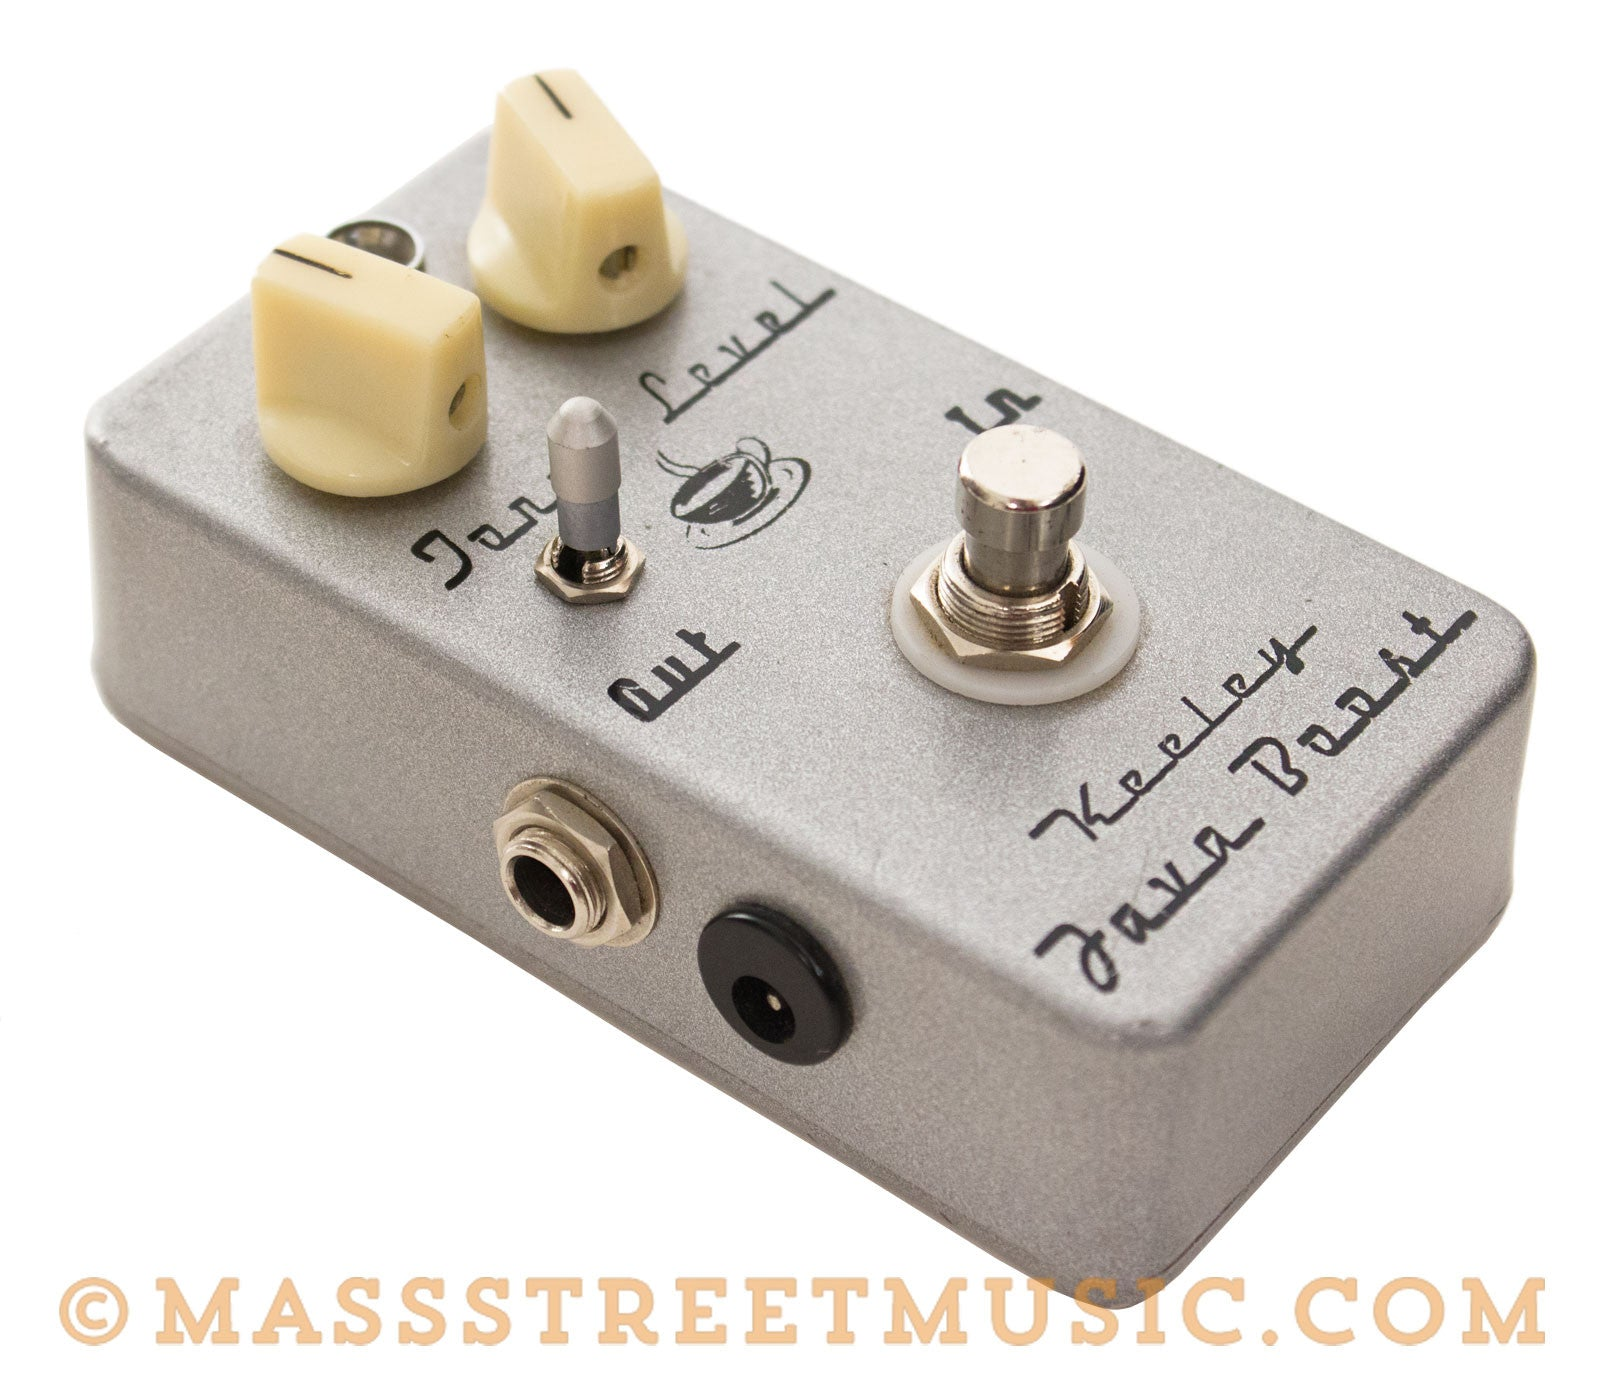 Keeley Effect Pedals - USED Java Boost Pedal - CV7003 Transistor